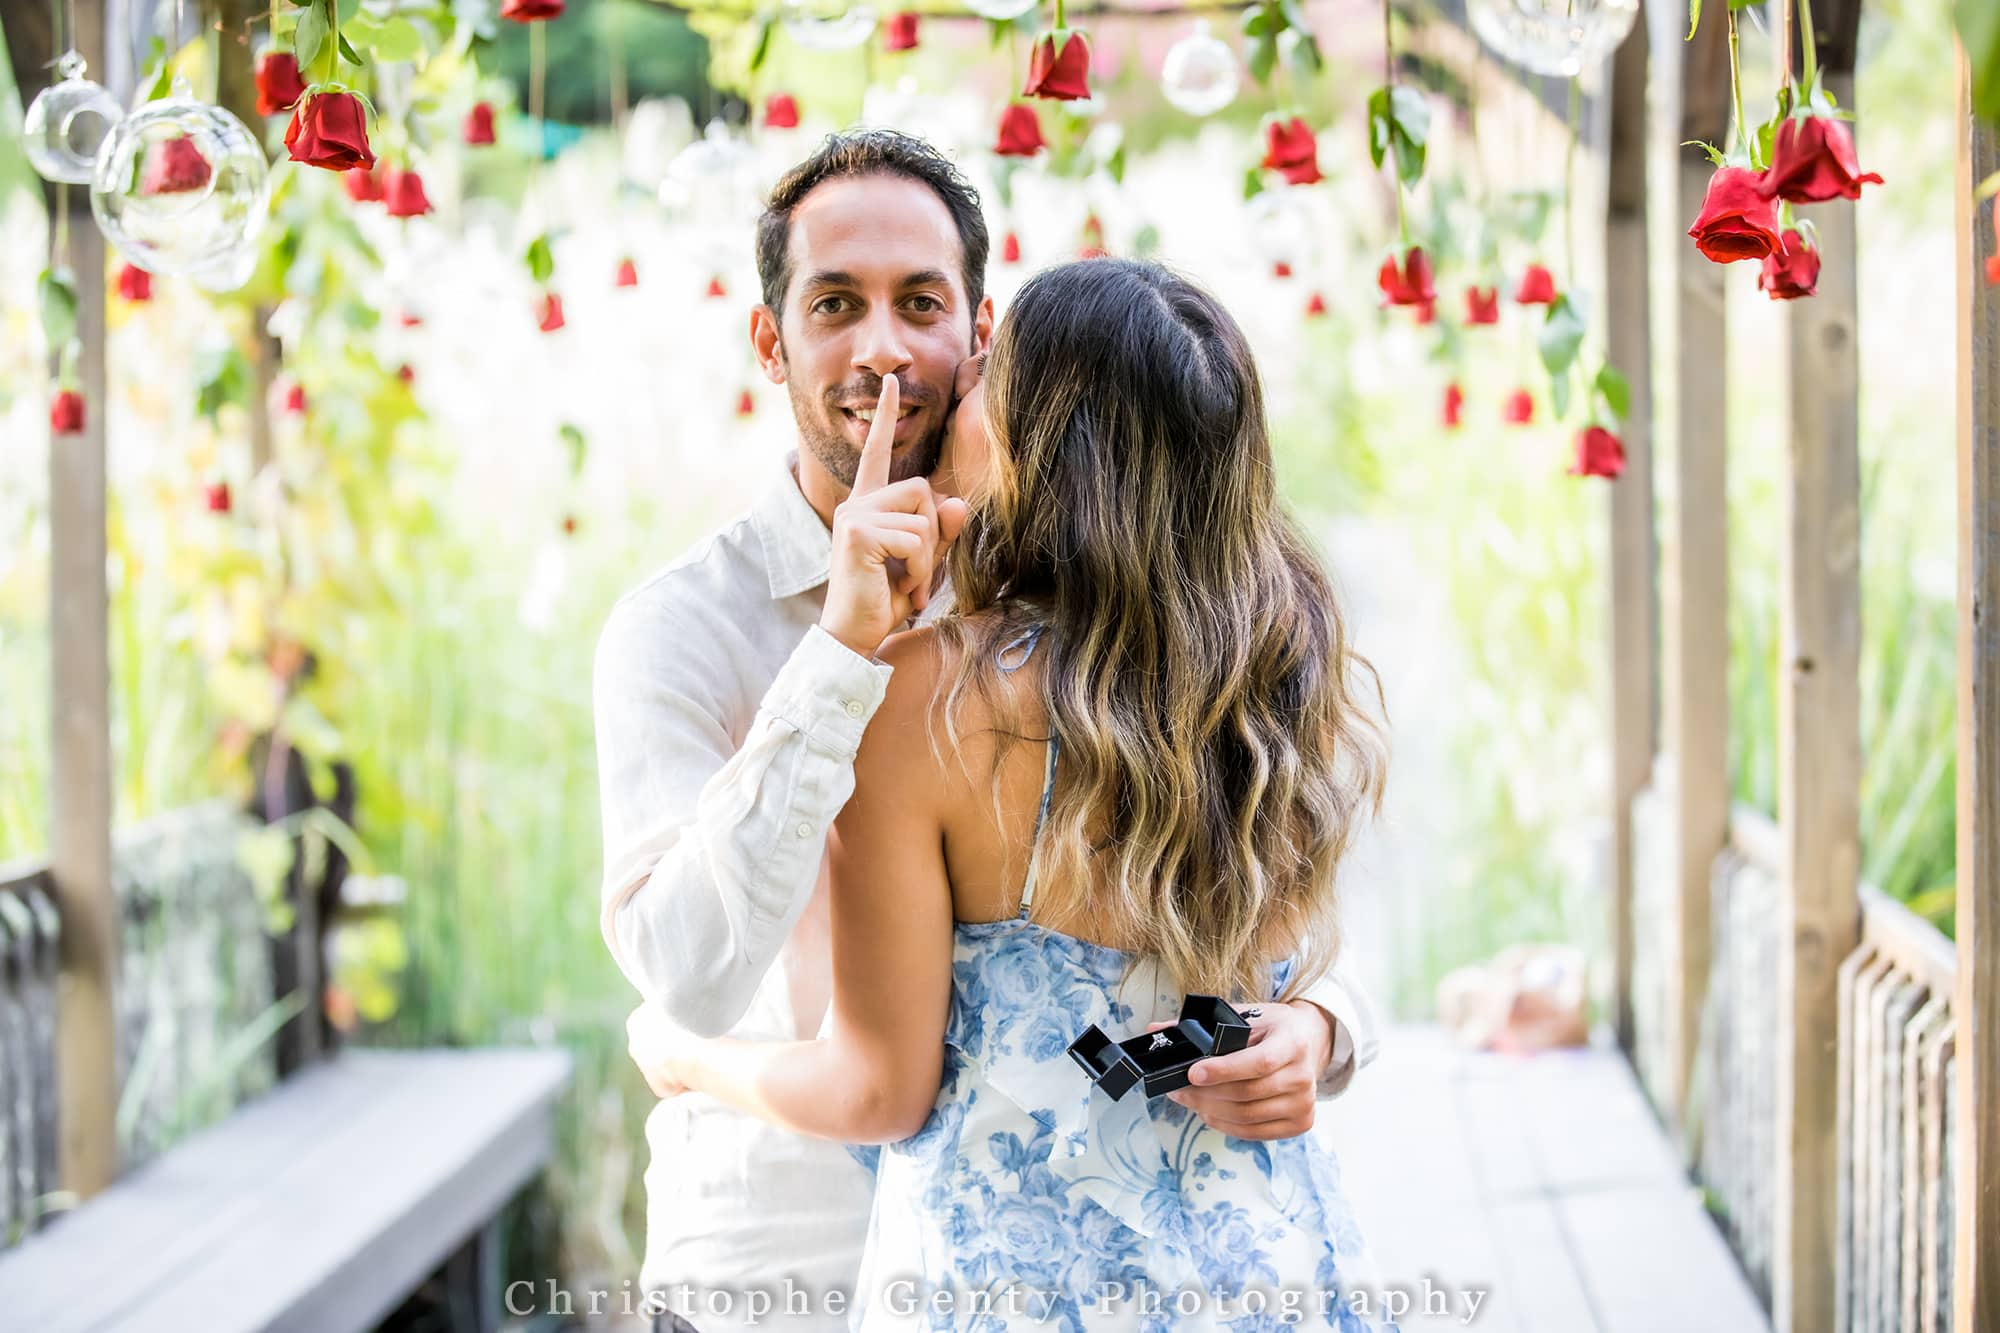 Best Proposal Wineries in The Napa Valley